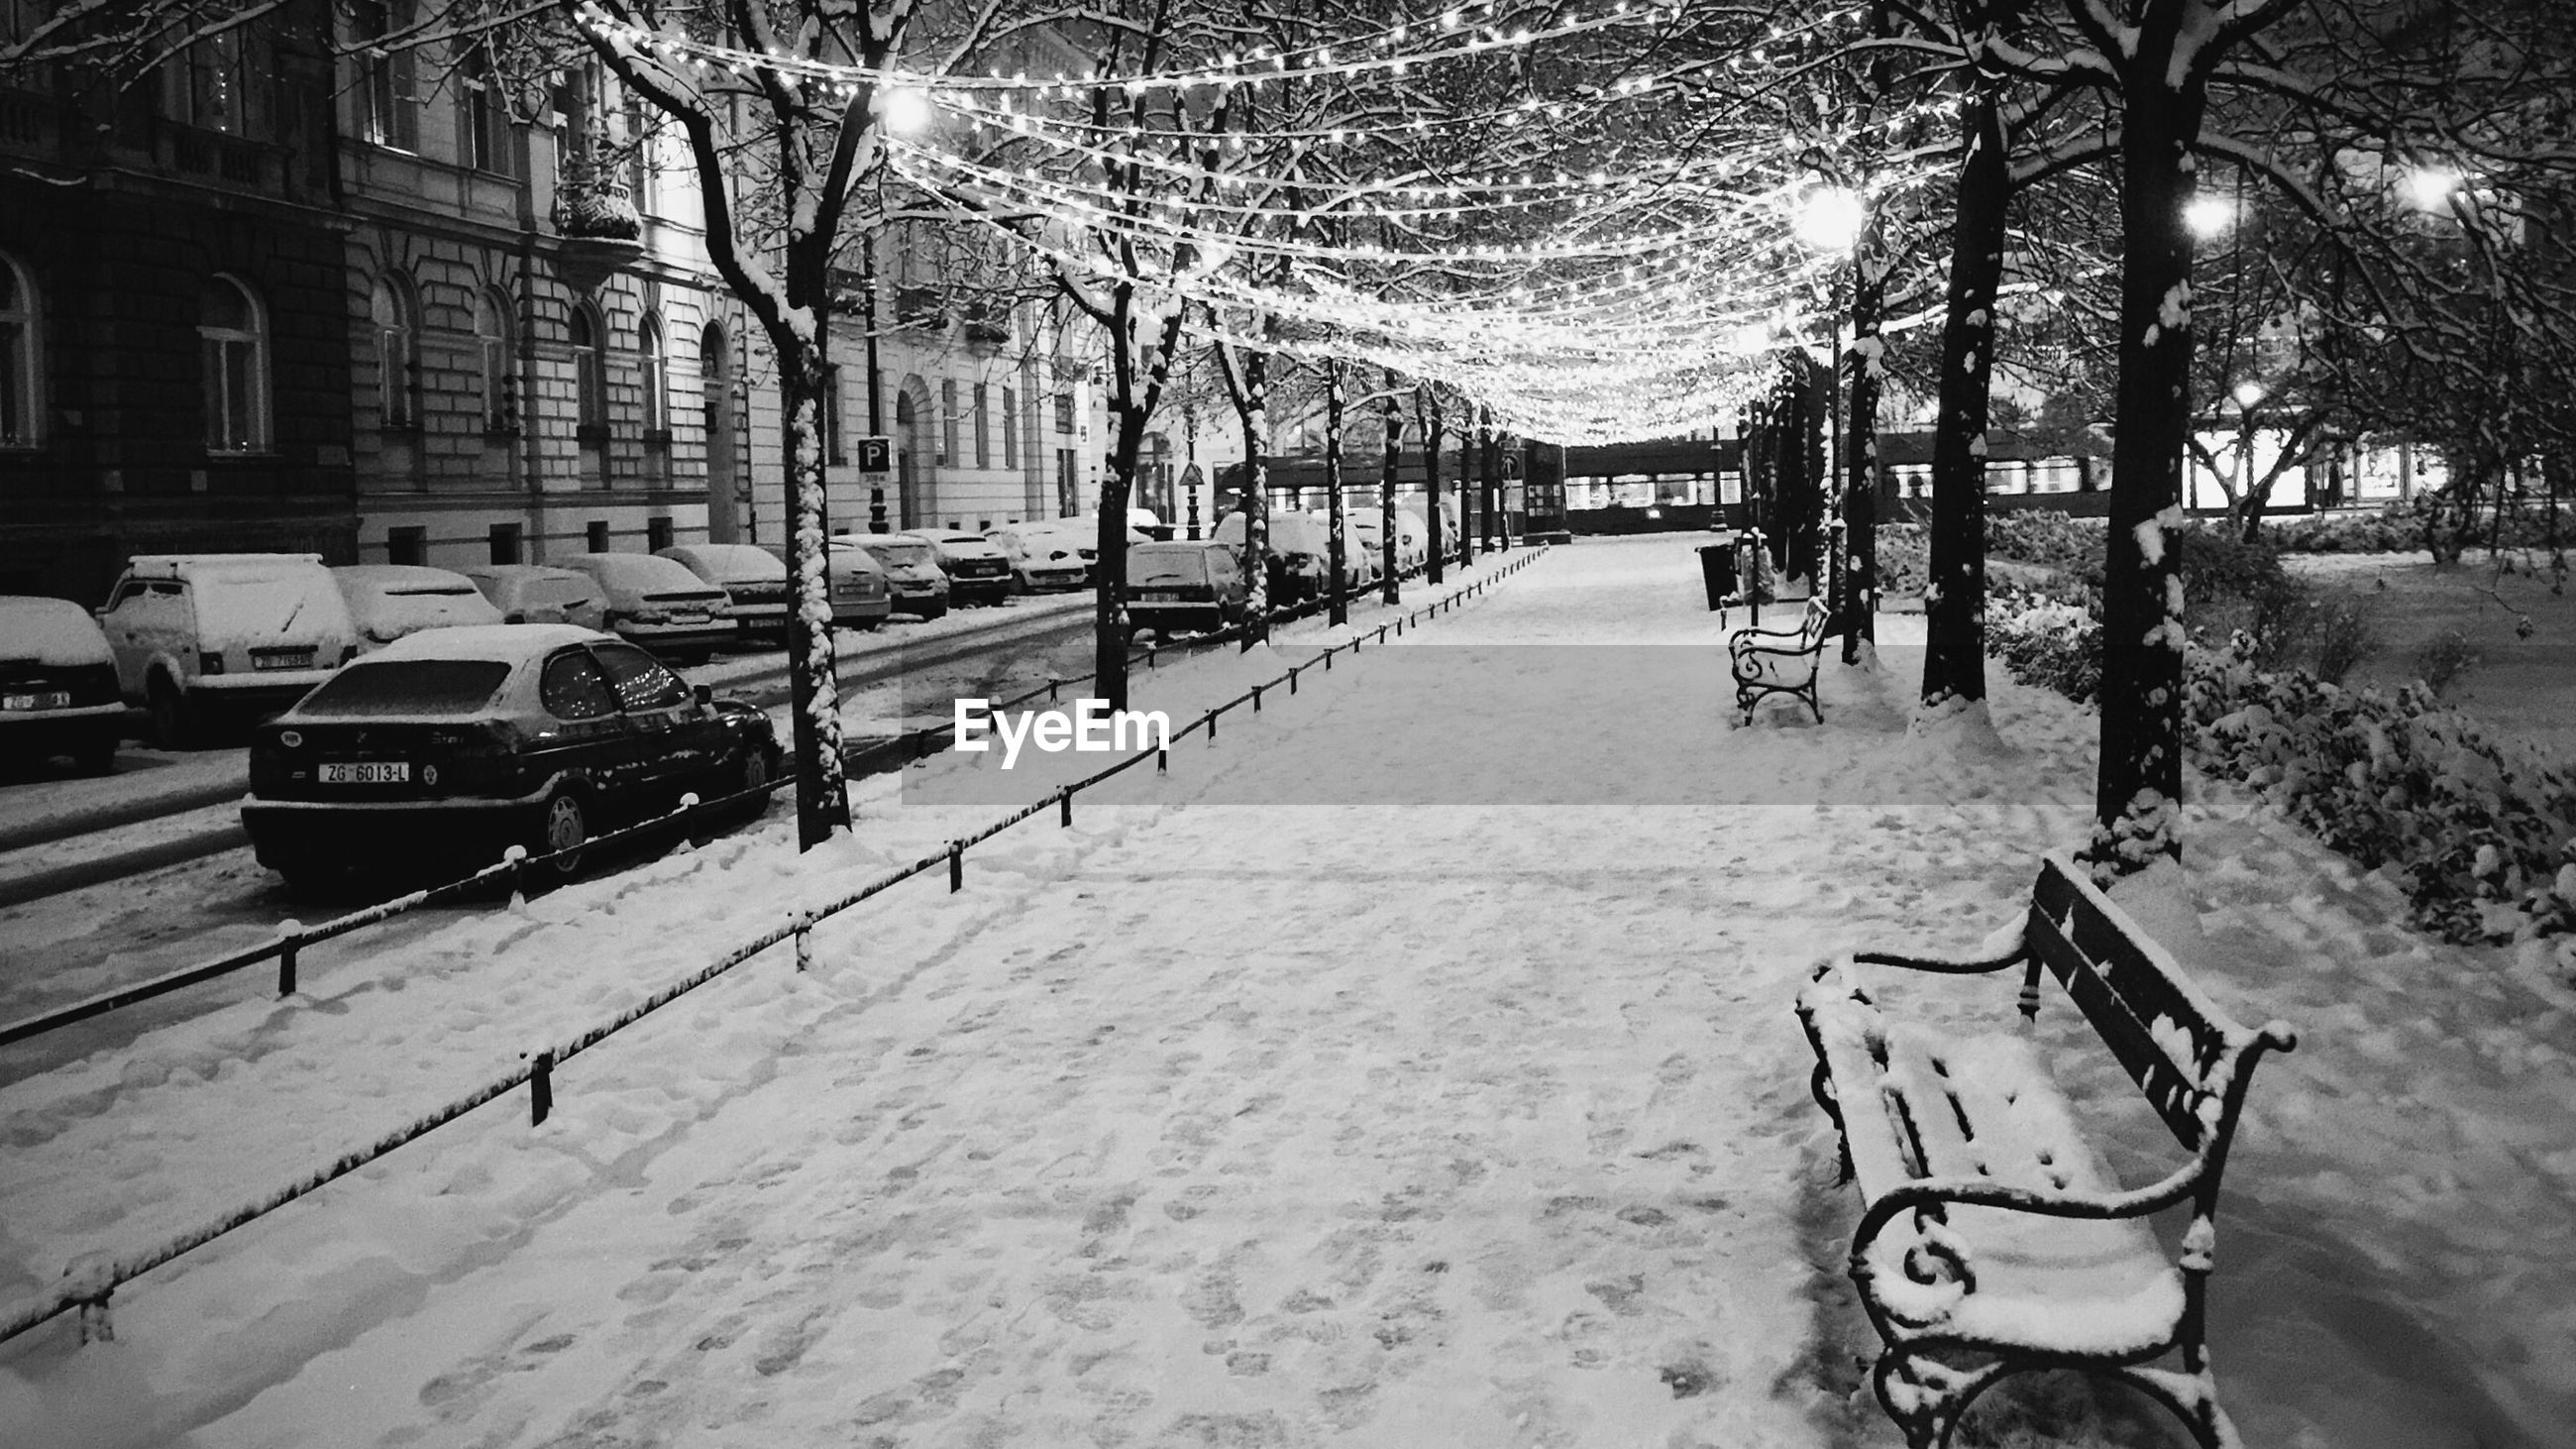 High angle view of empty benches on snow covered illuminated street